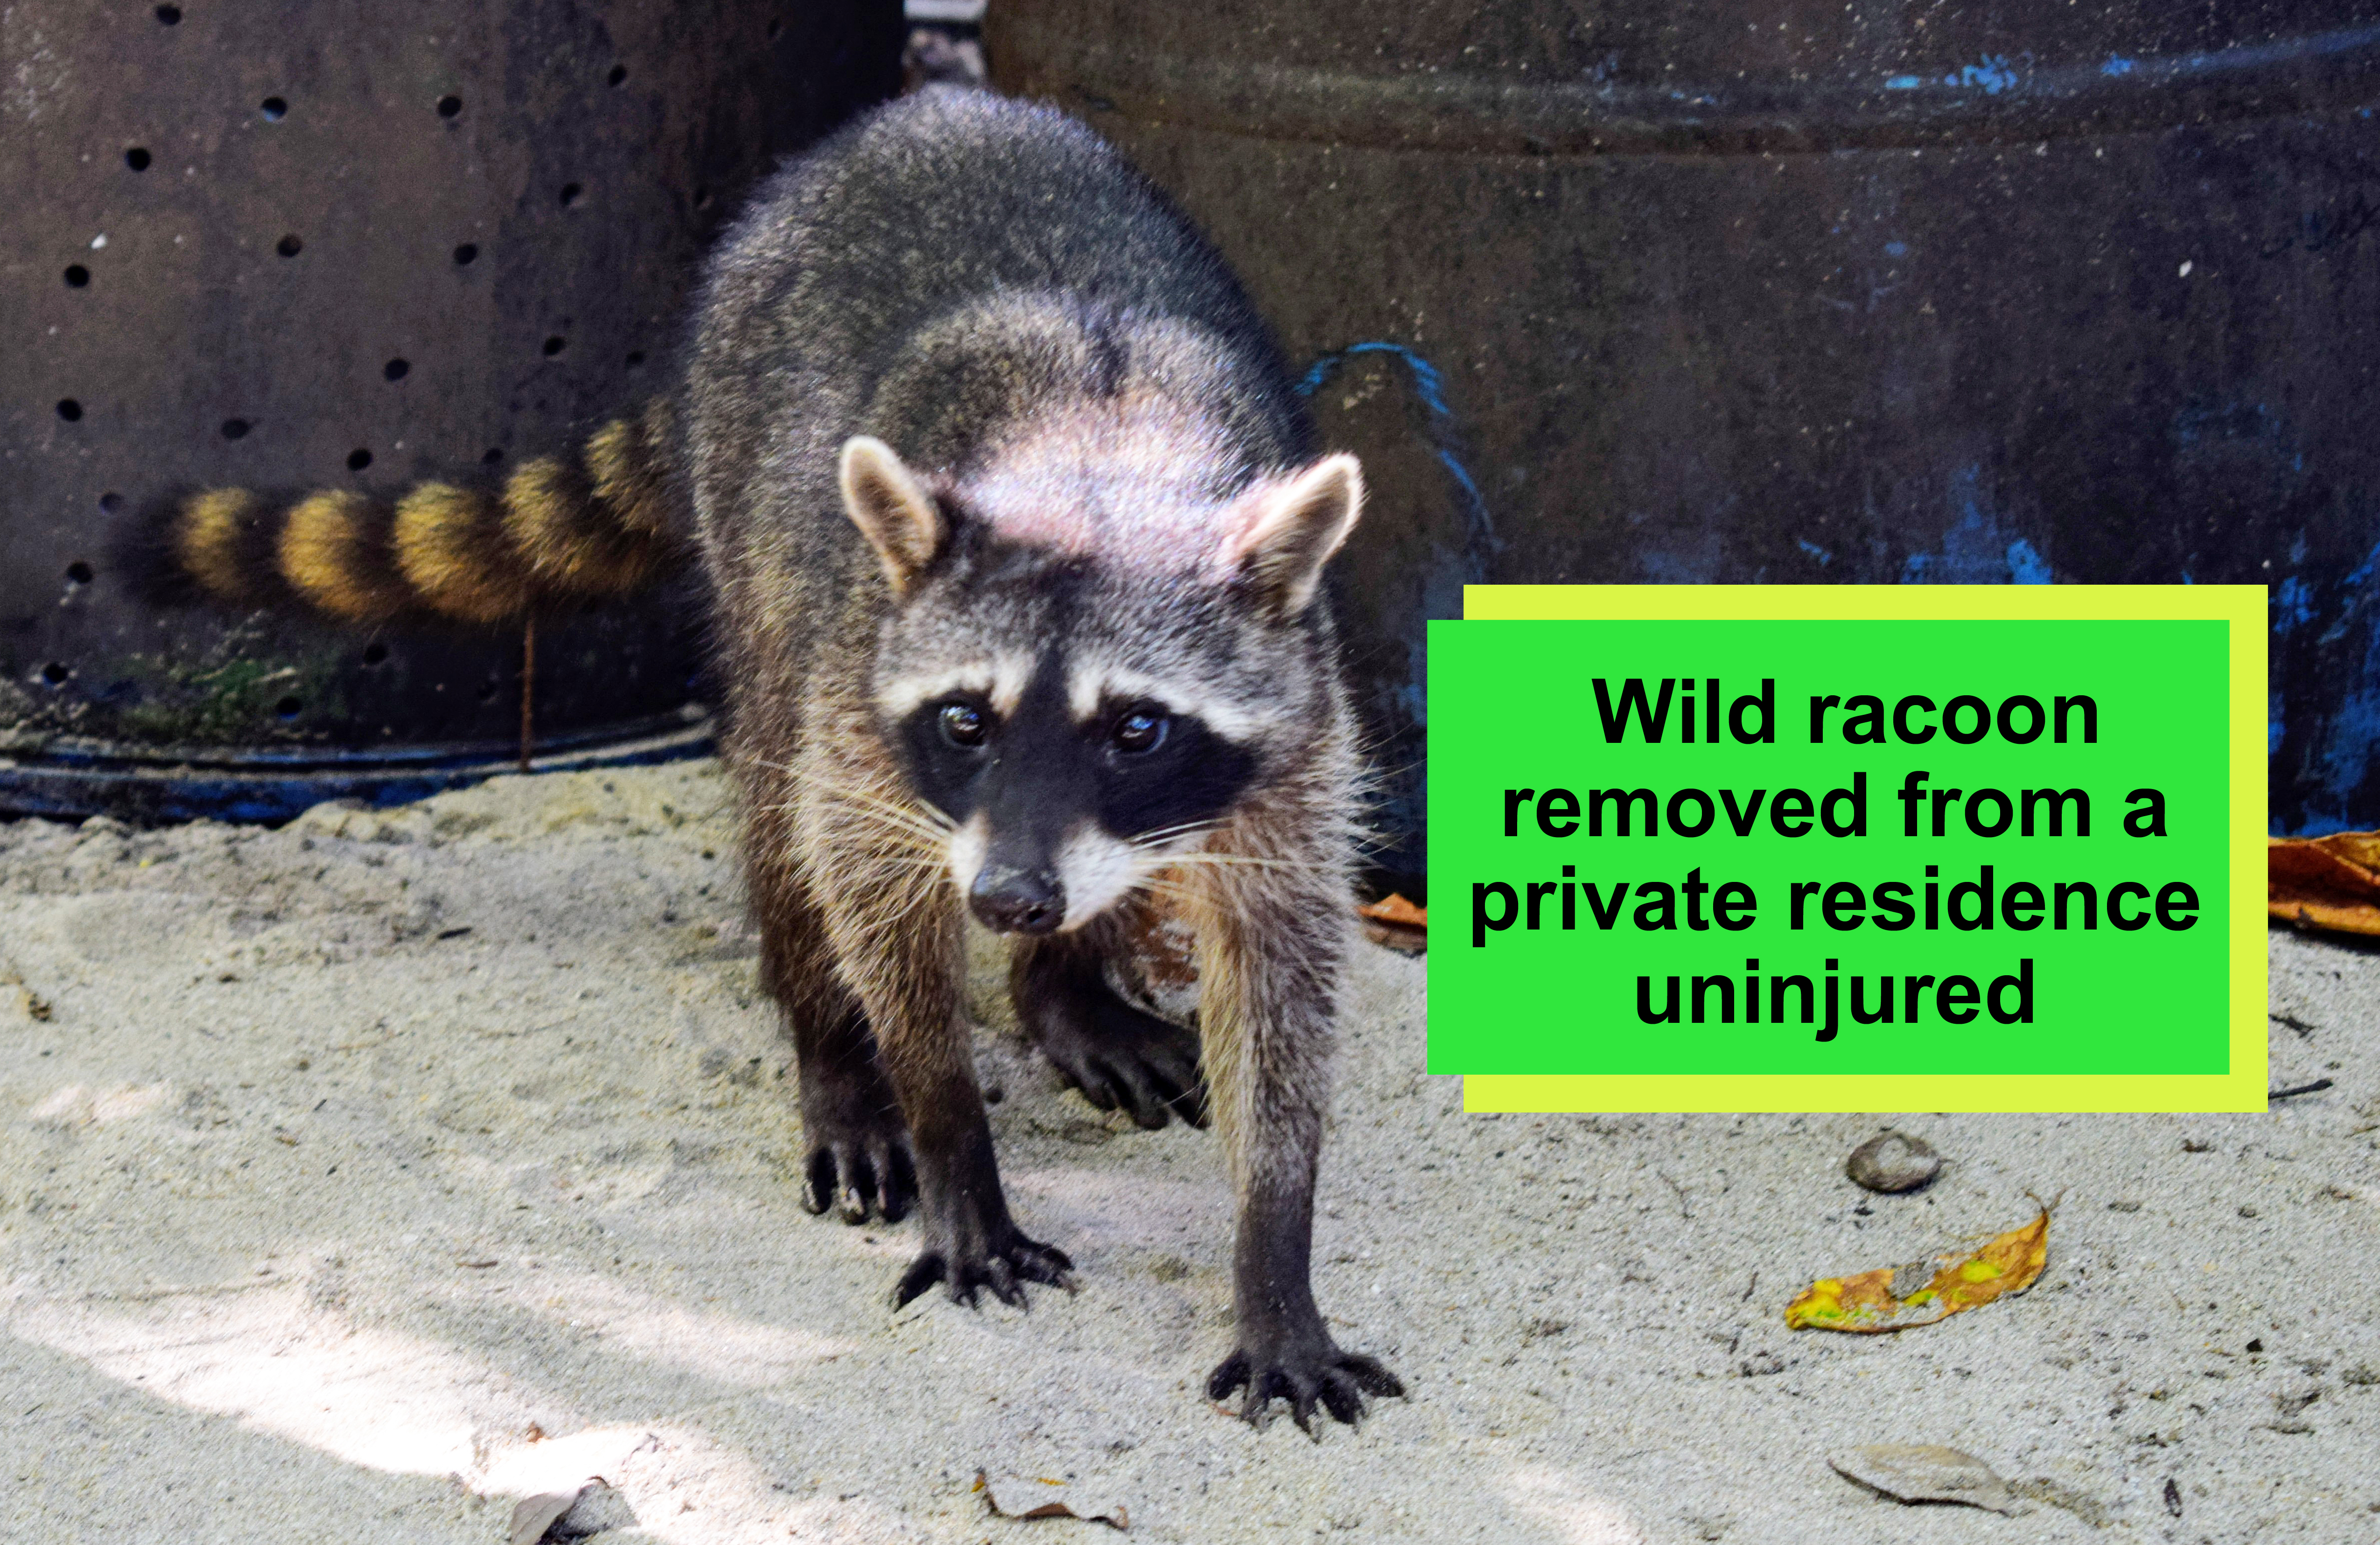 Racoon-text